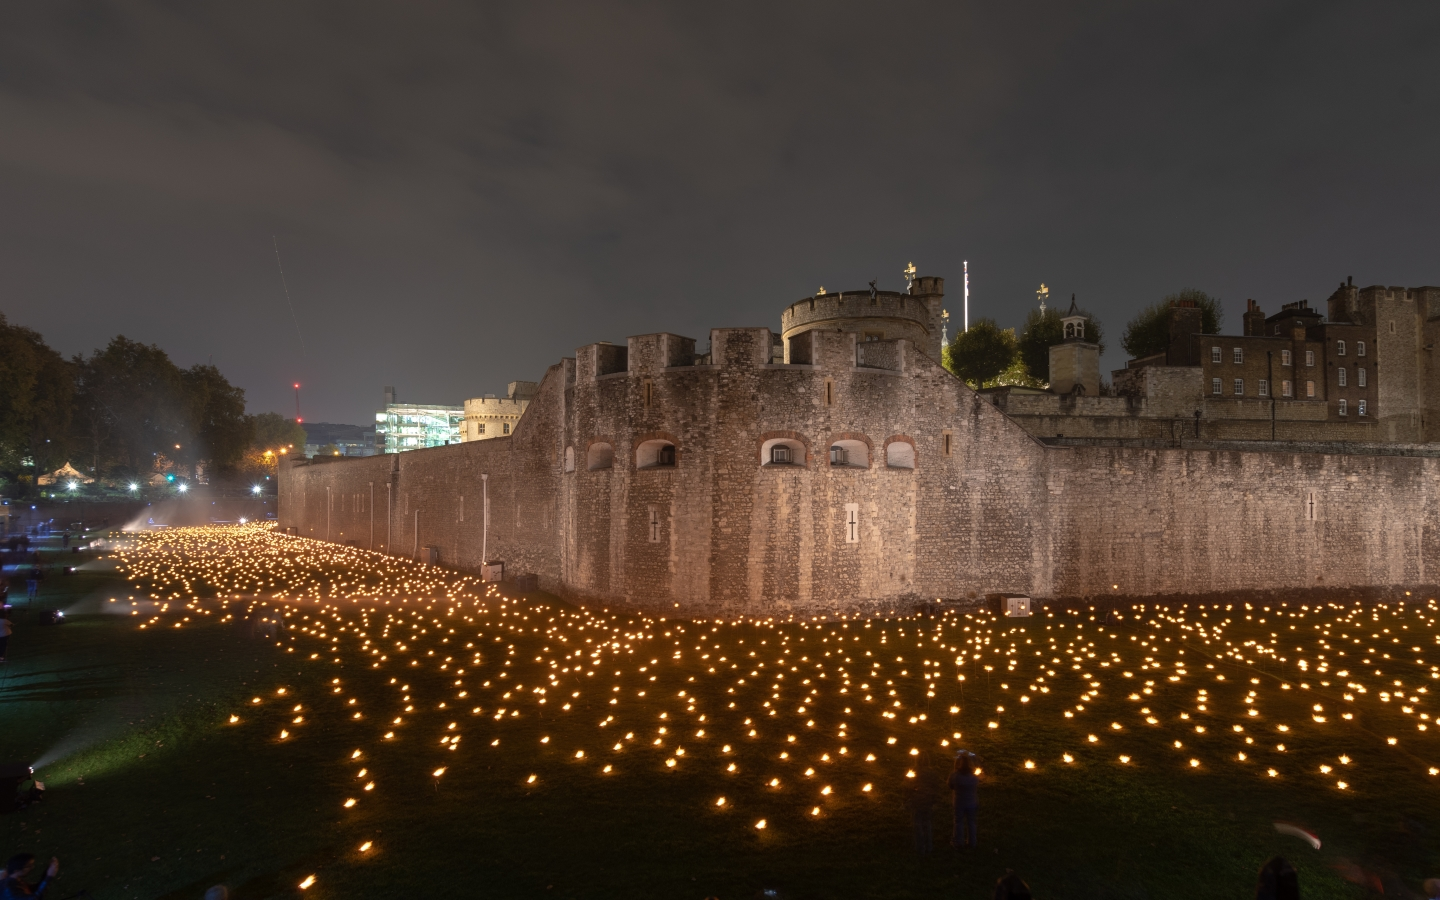 Tower of London for Remembrance Day 2018